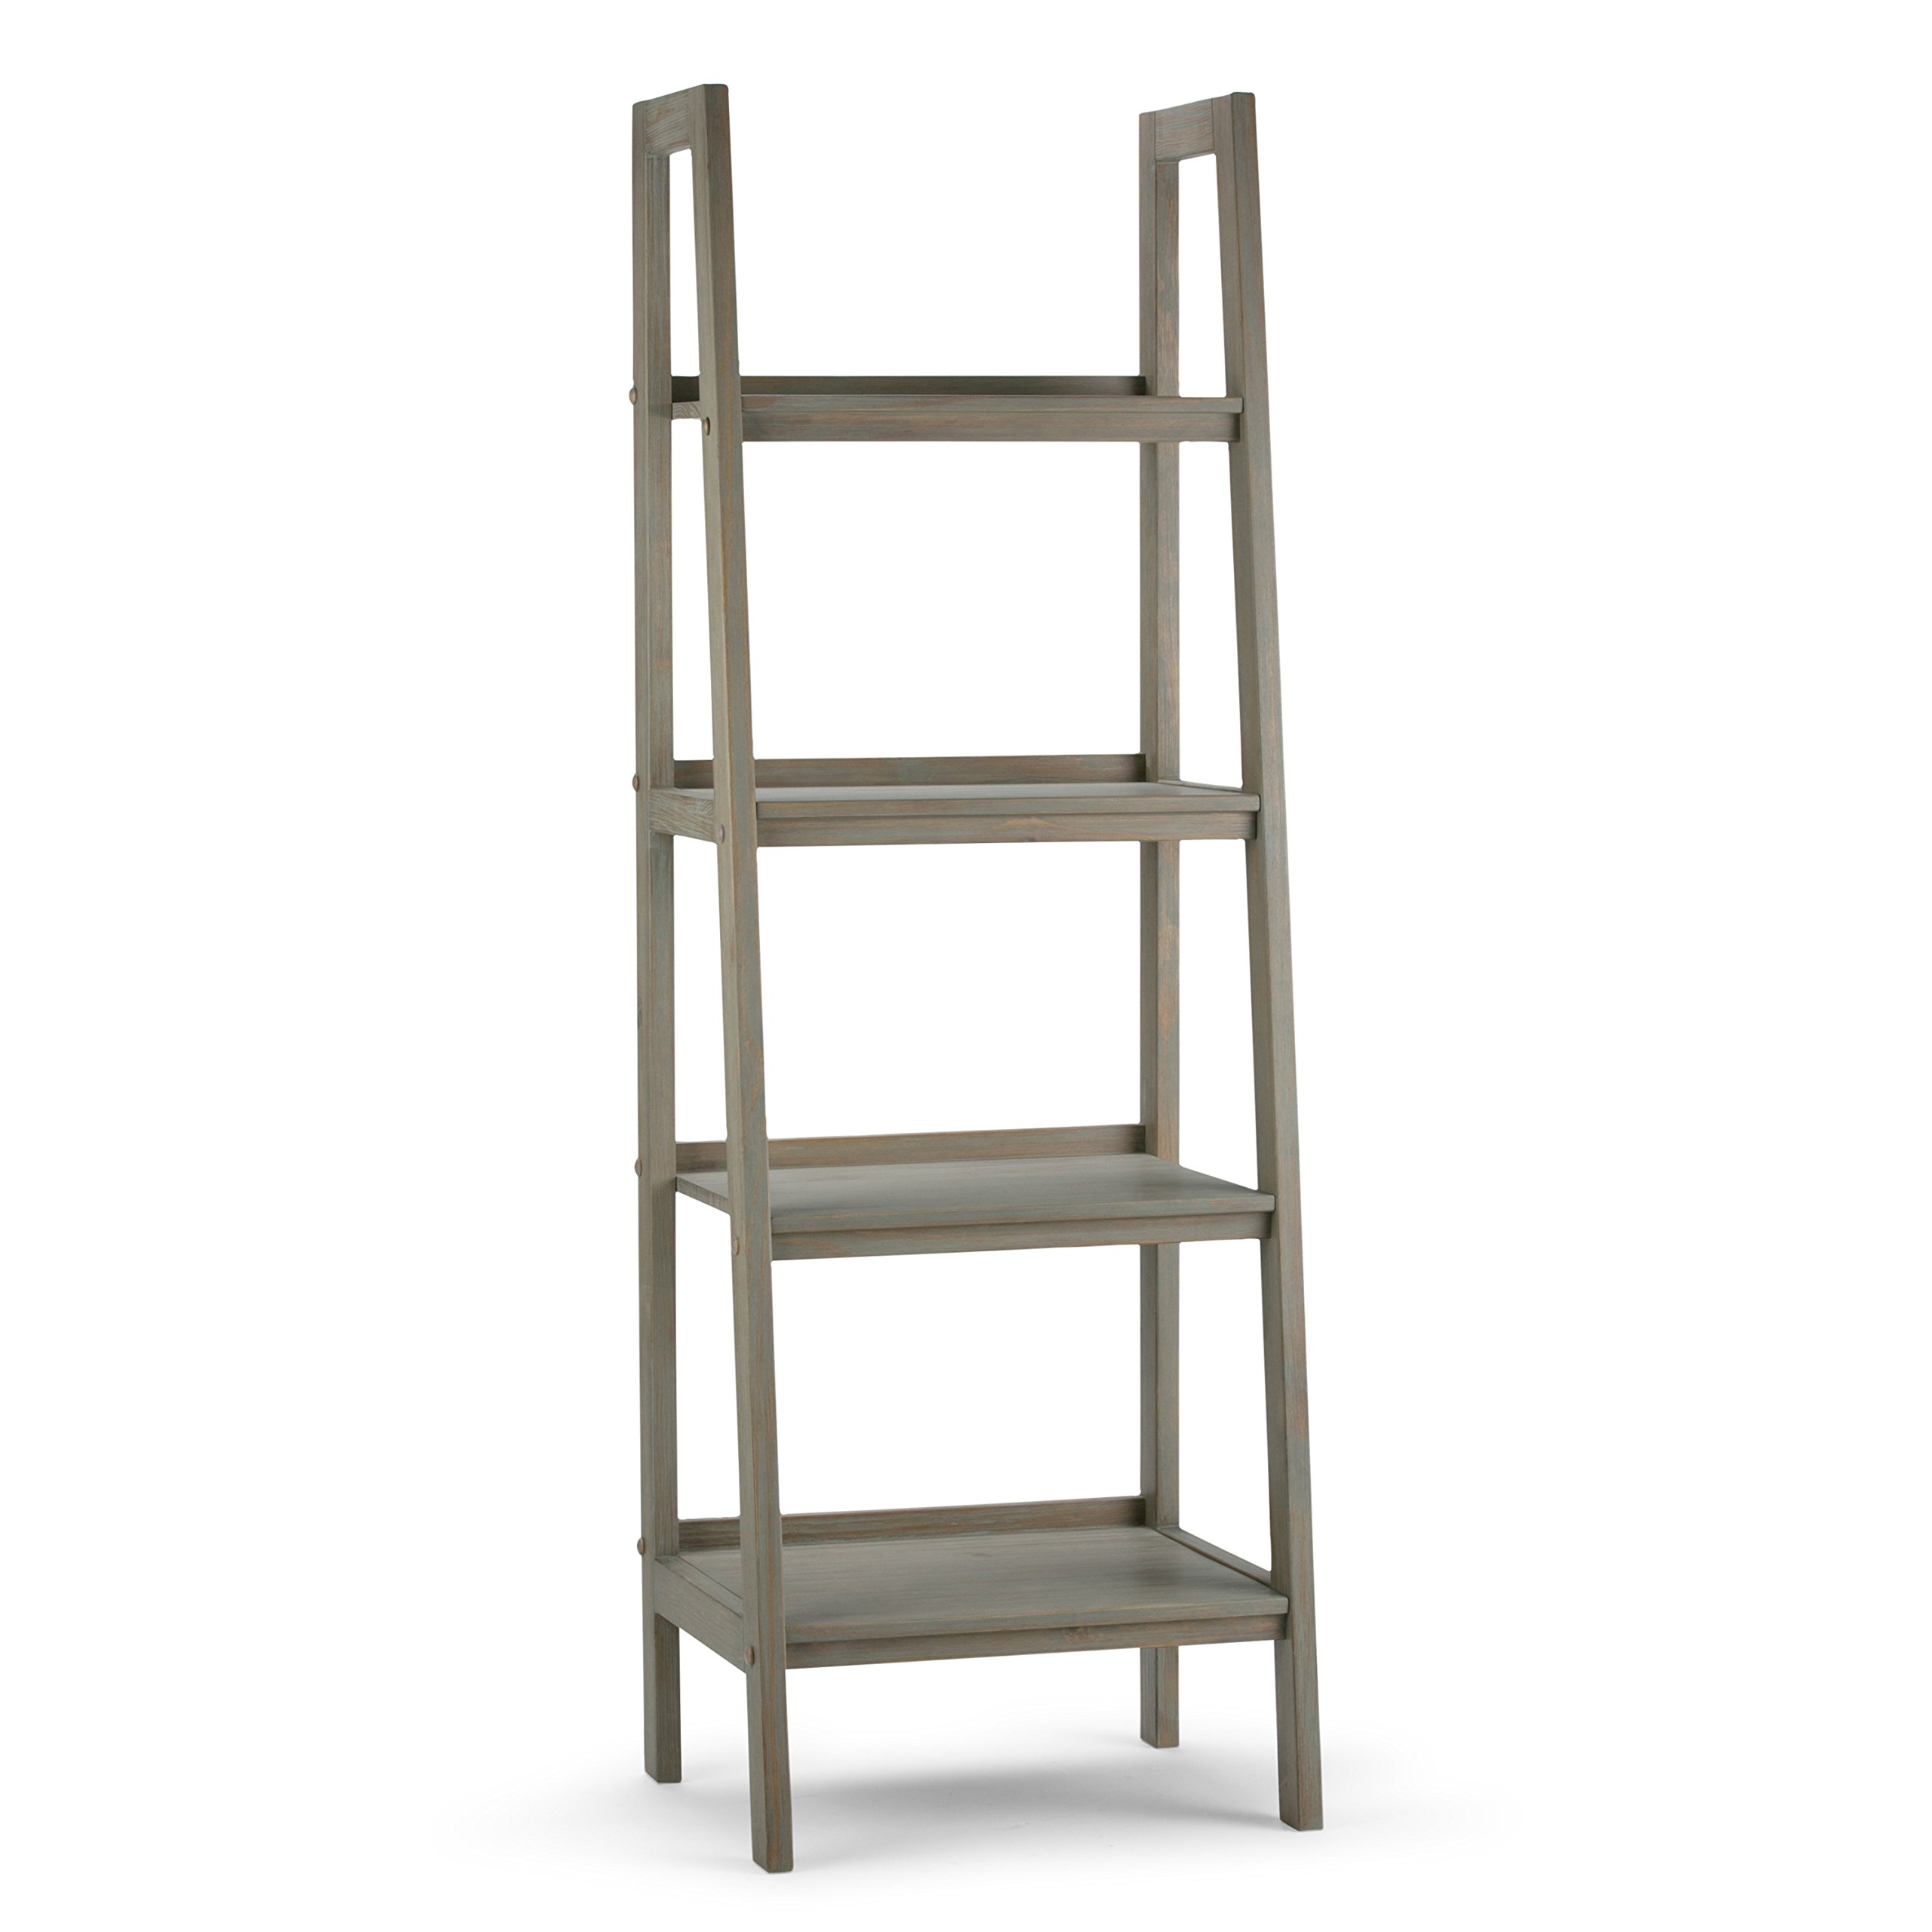 furniture x accents shelf t home a rustic bookcase ikea bookcases size ashley leaning small step espresso storage ladder